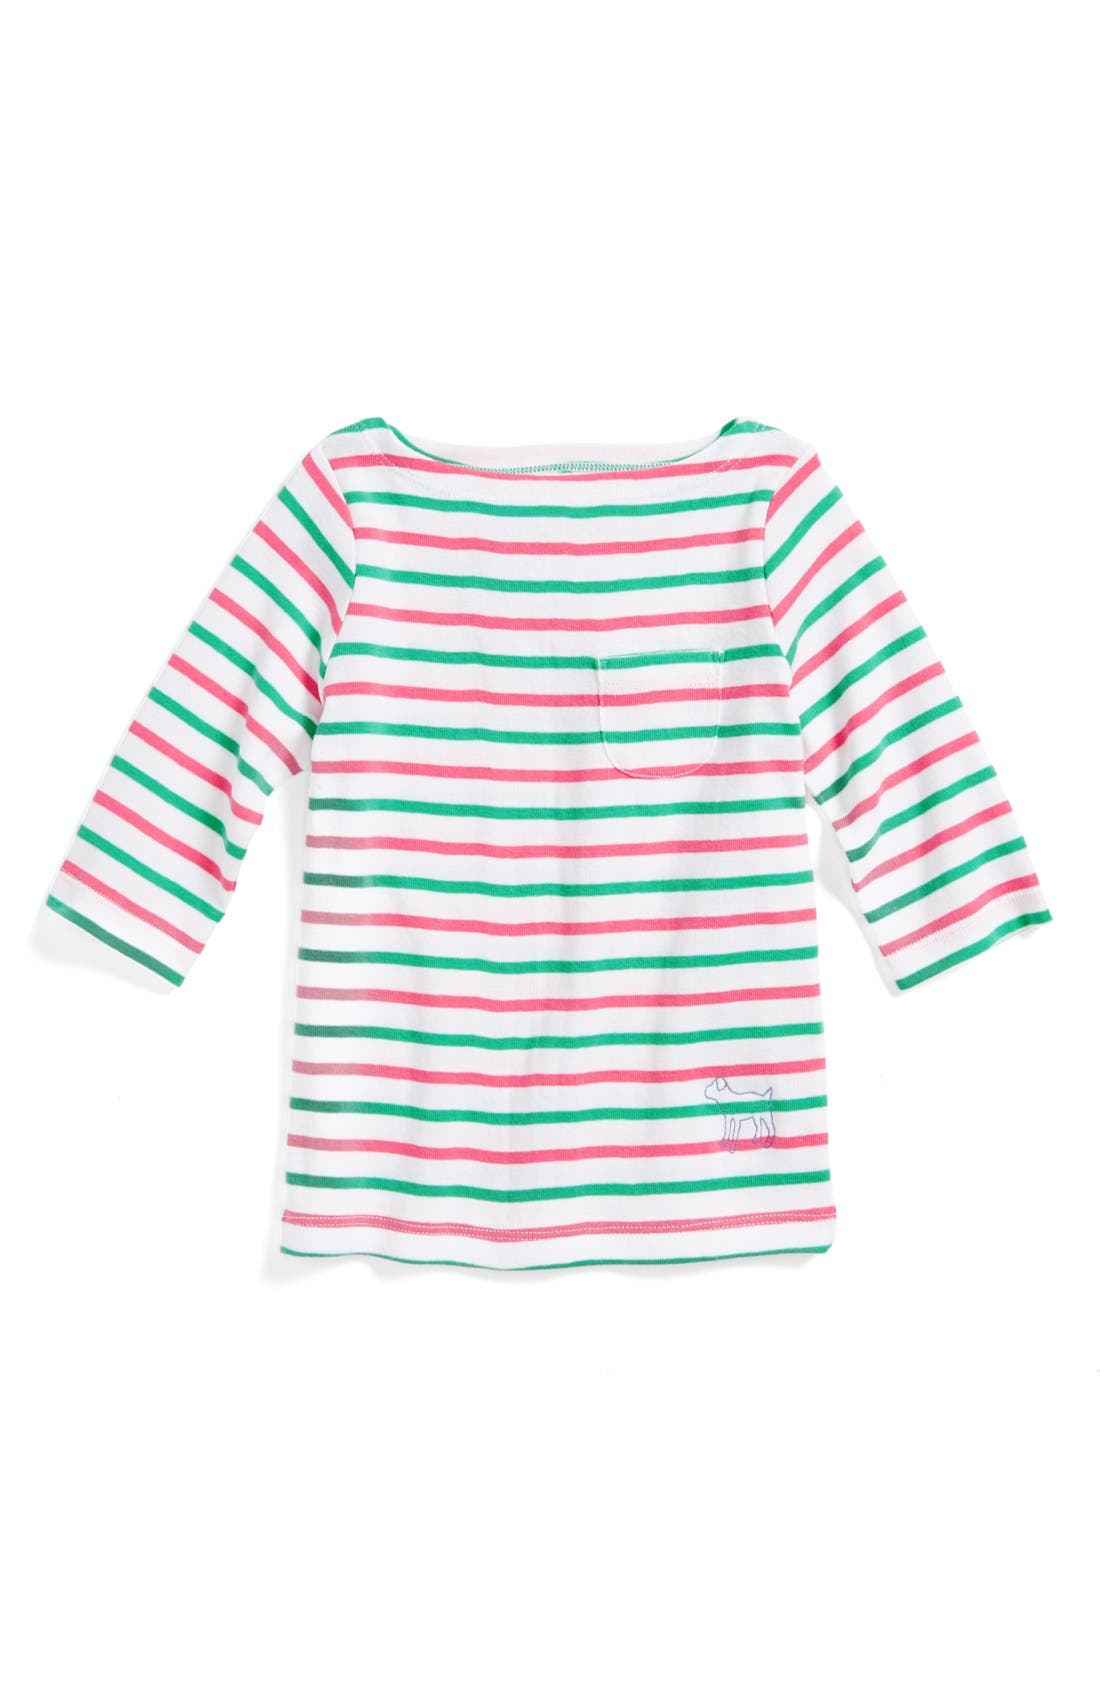 Main Image - Mini Boden Stripy Boatneck Shirt (Toddler Girls, Little Girls & Big Girls)